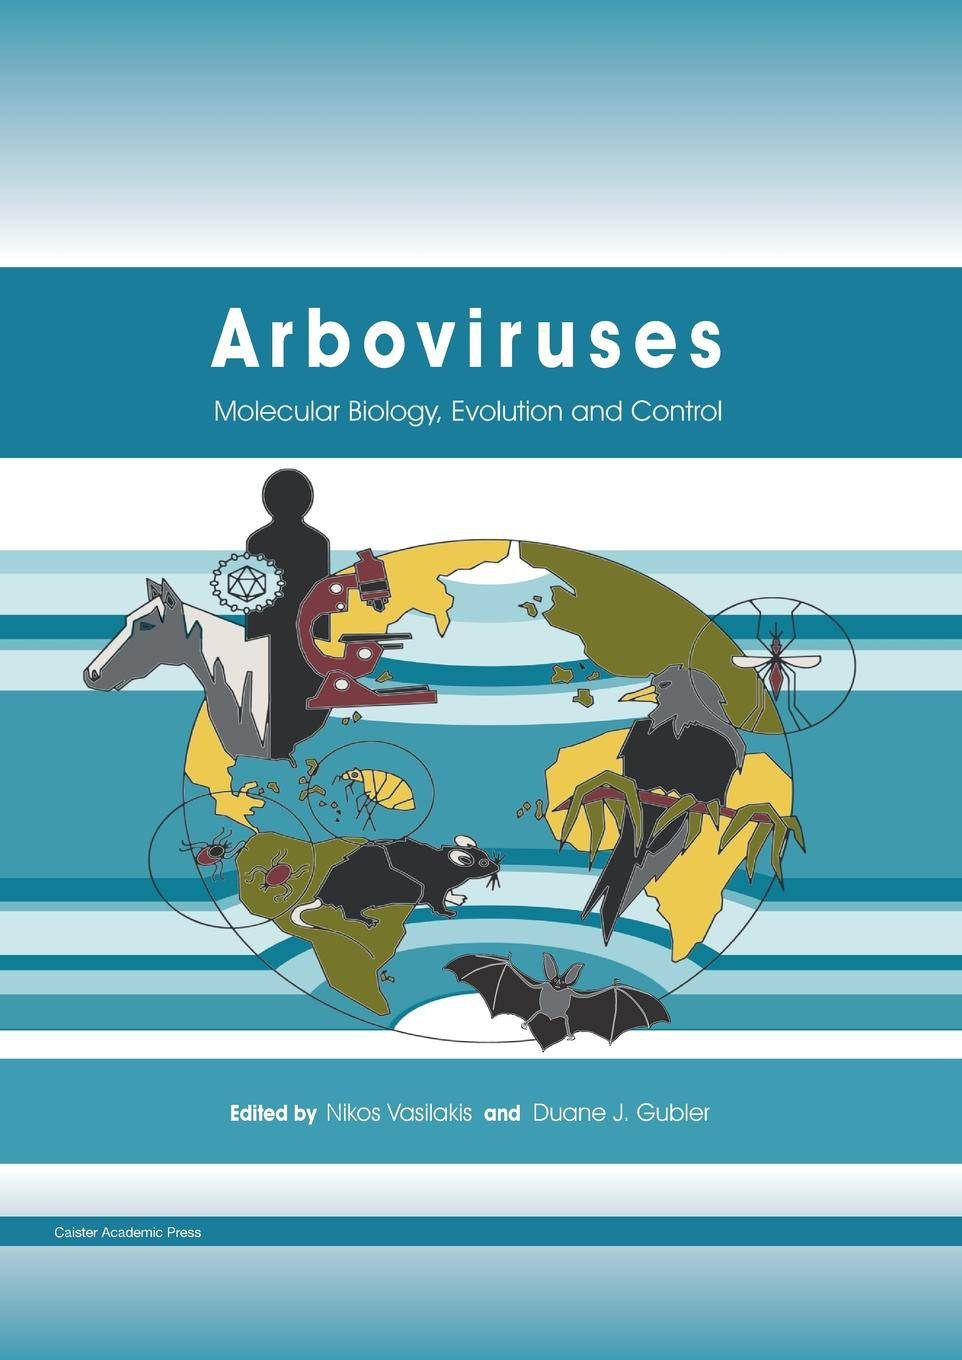 Arboviruses: Molecular Biology, Evolution and Control